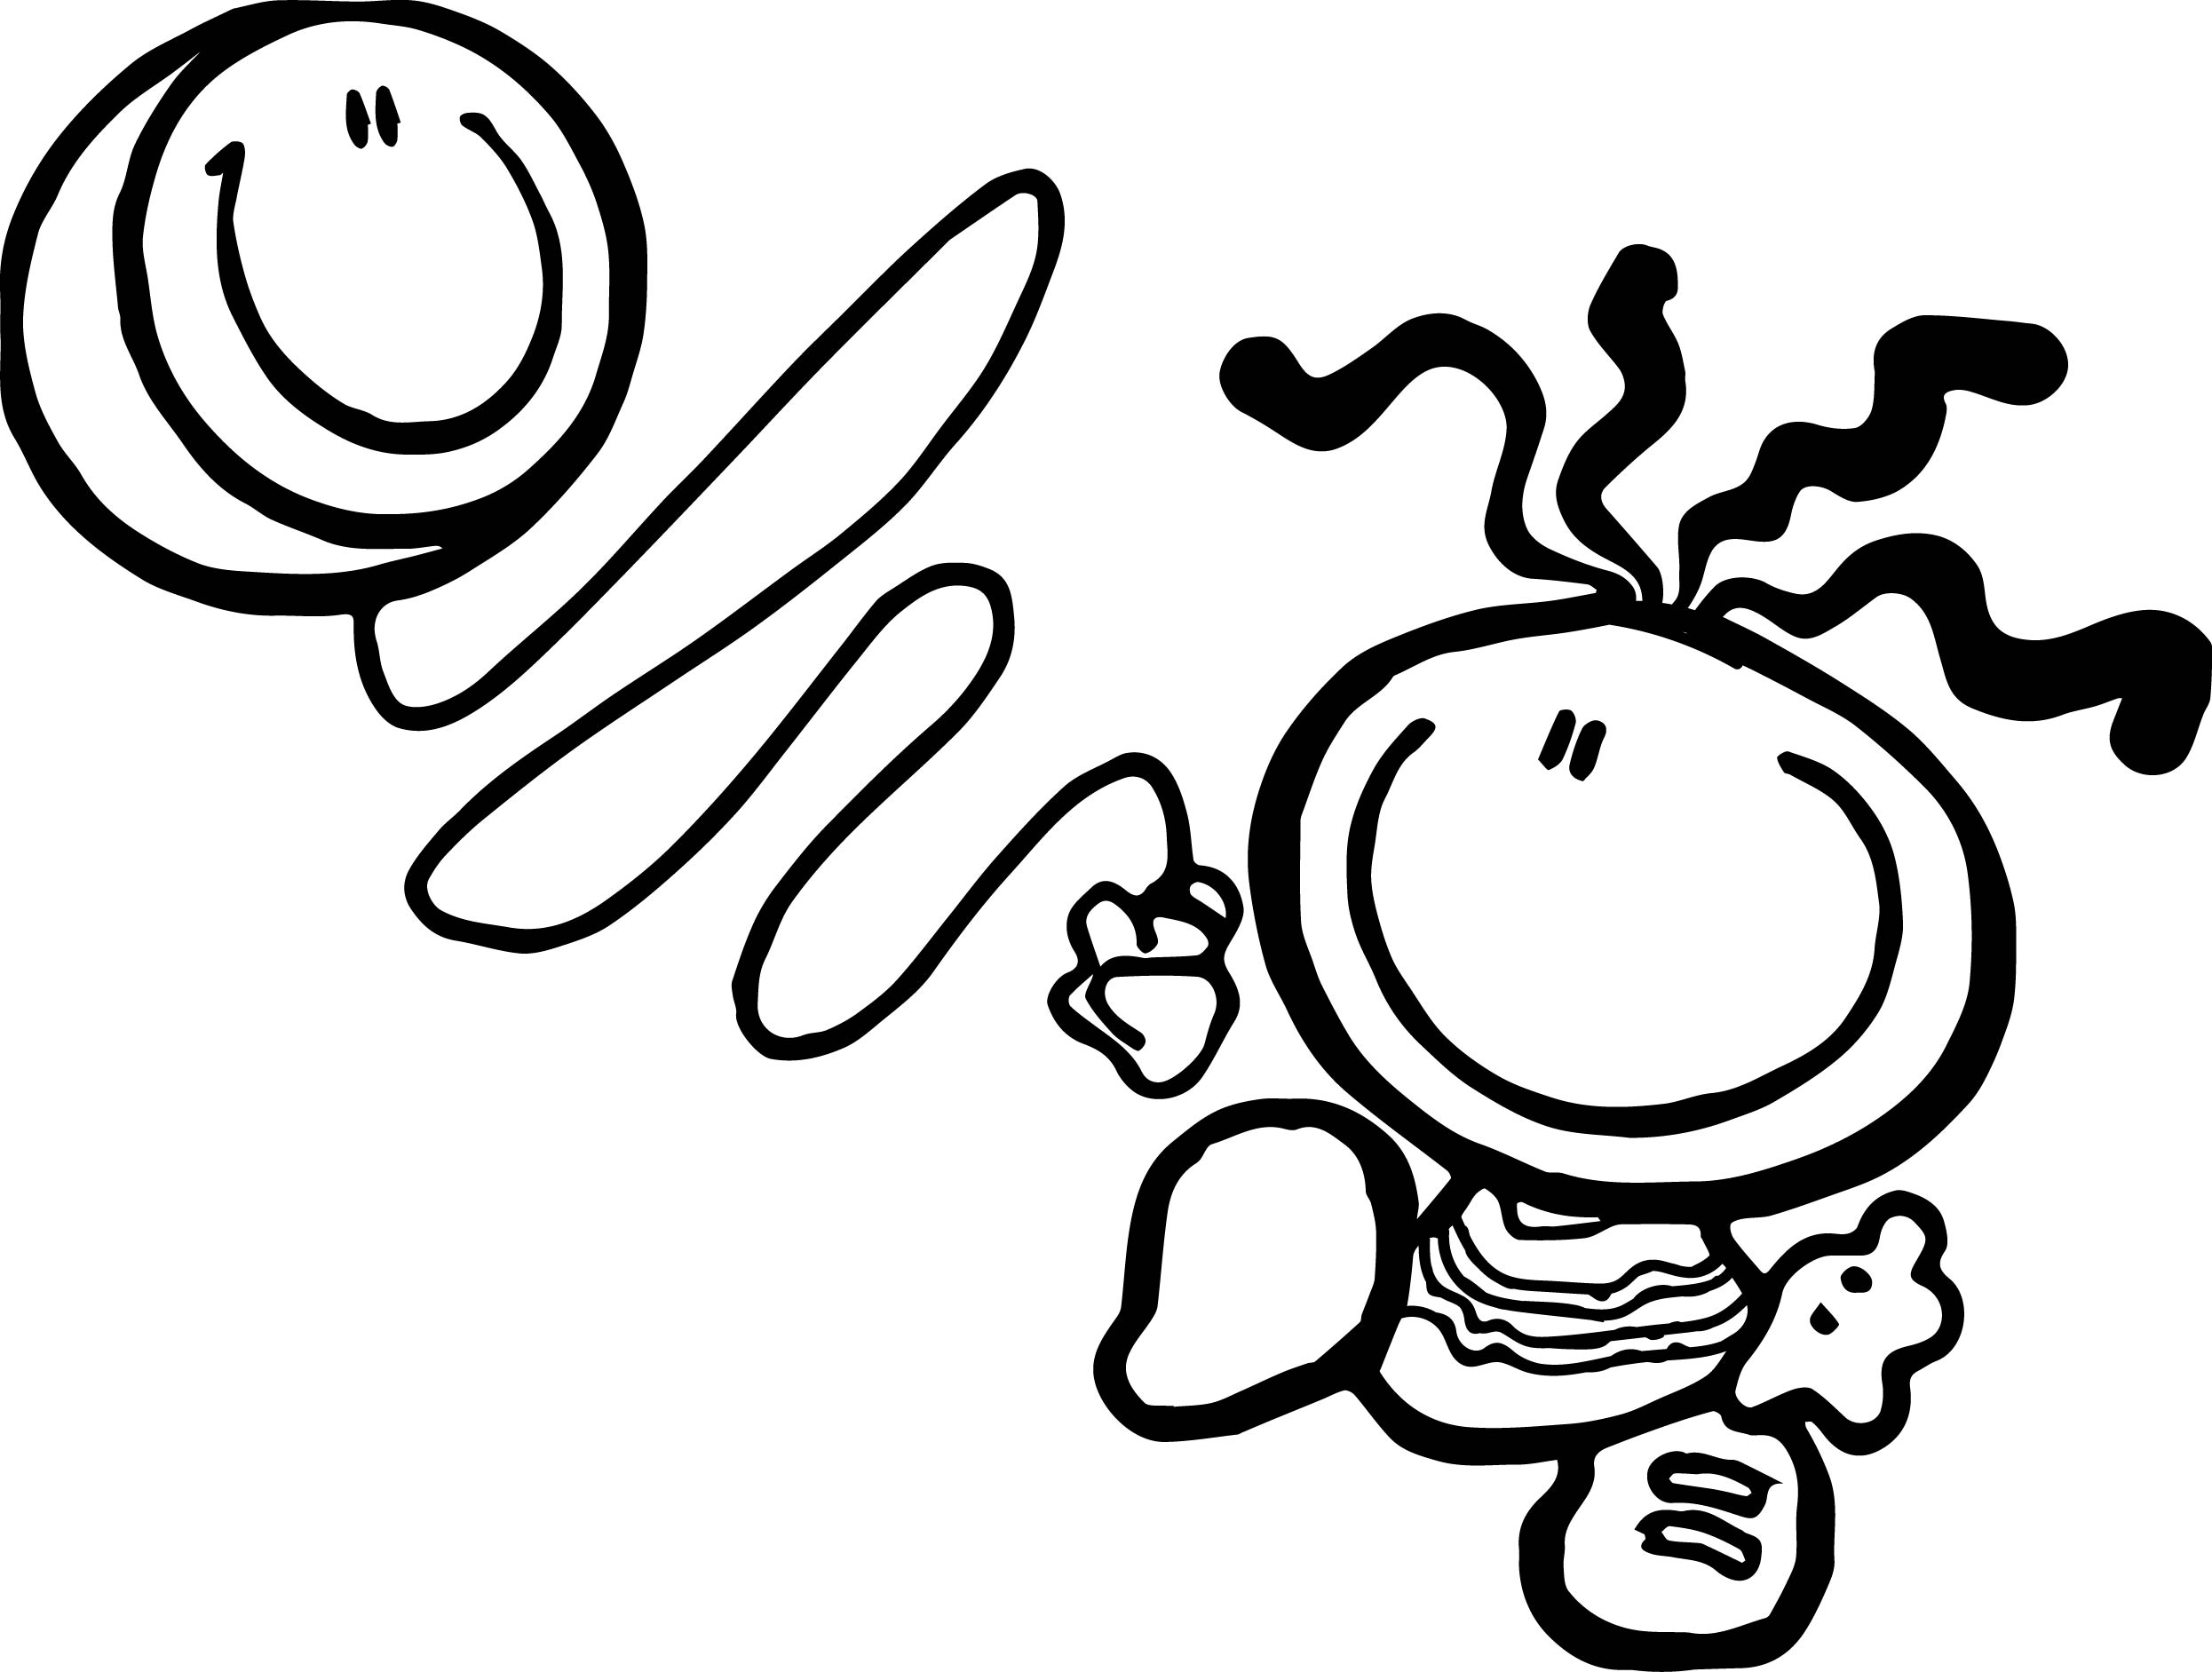 2491x1883 Coloring Pages Kids Bubblegum Balloon Kids Coloring Page Balloon